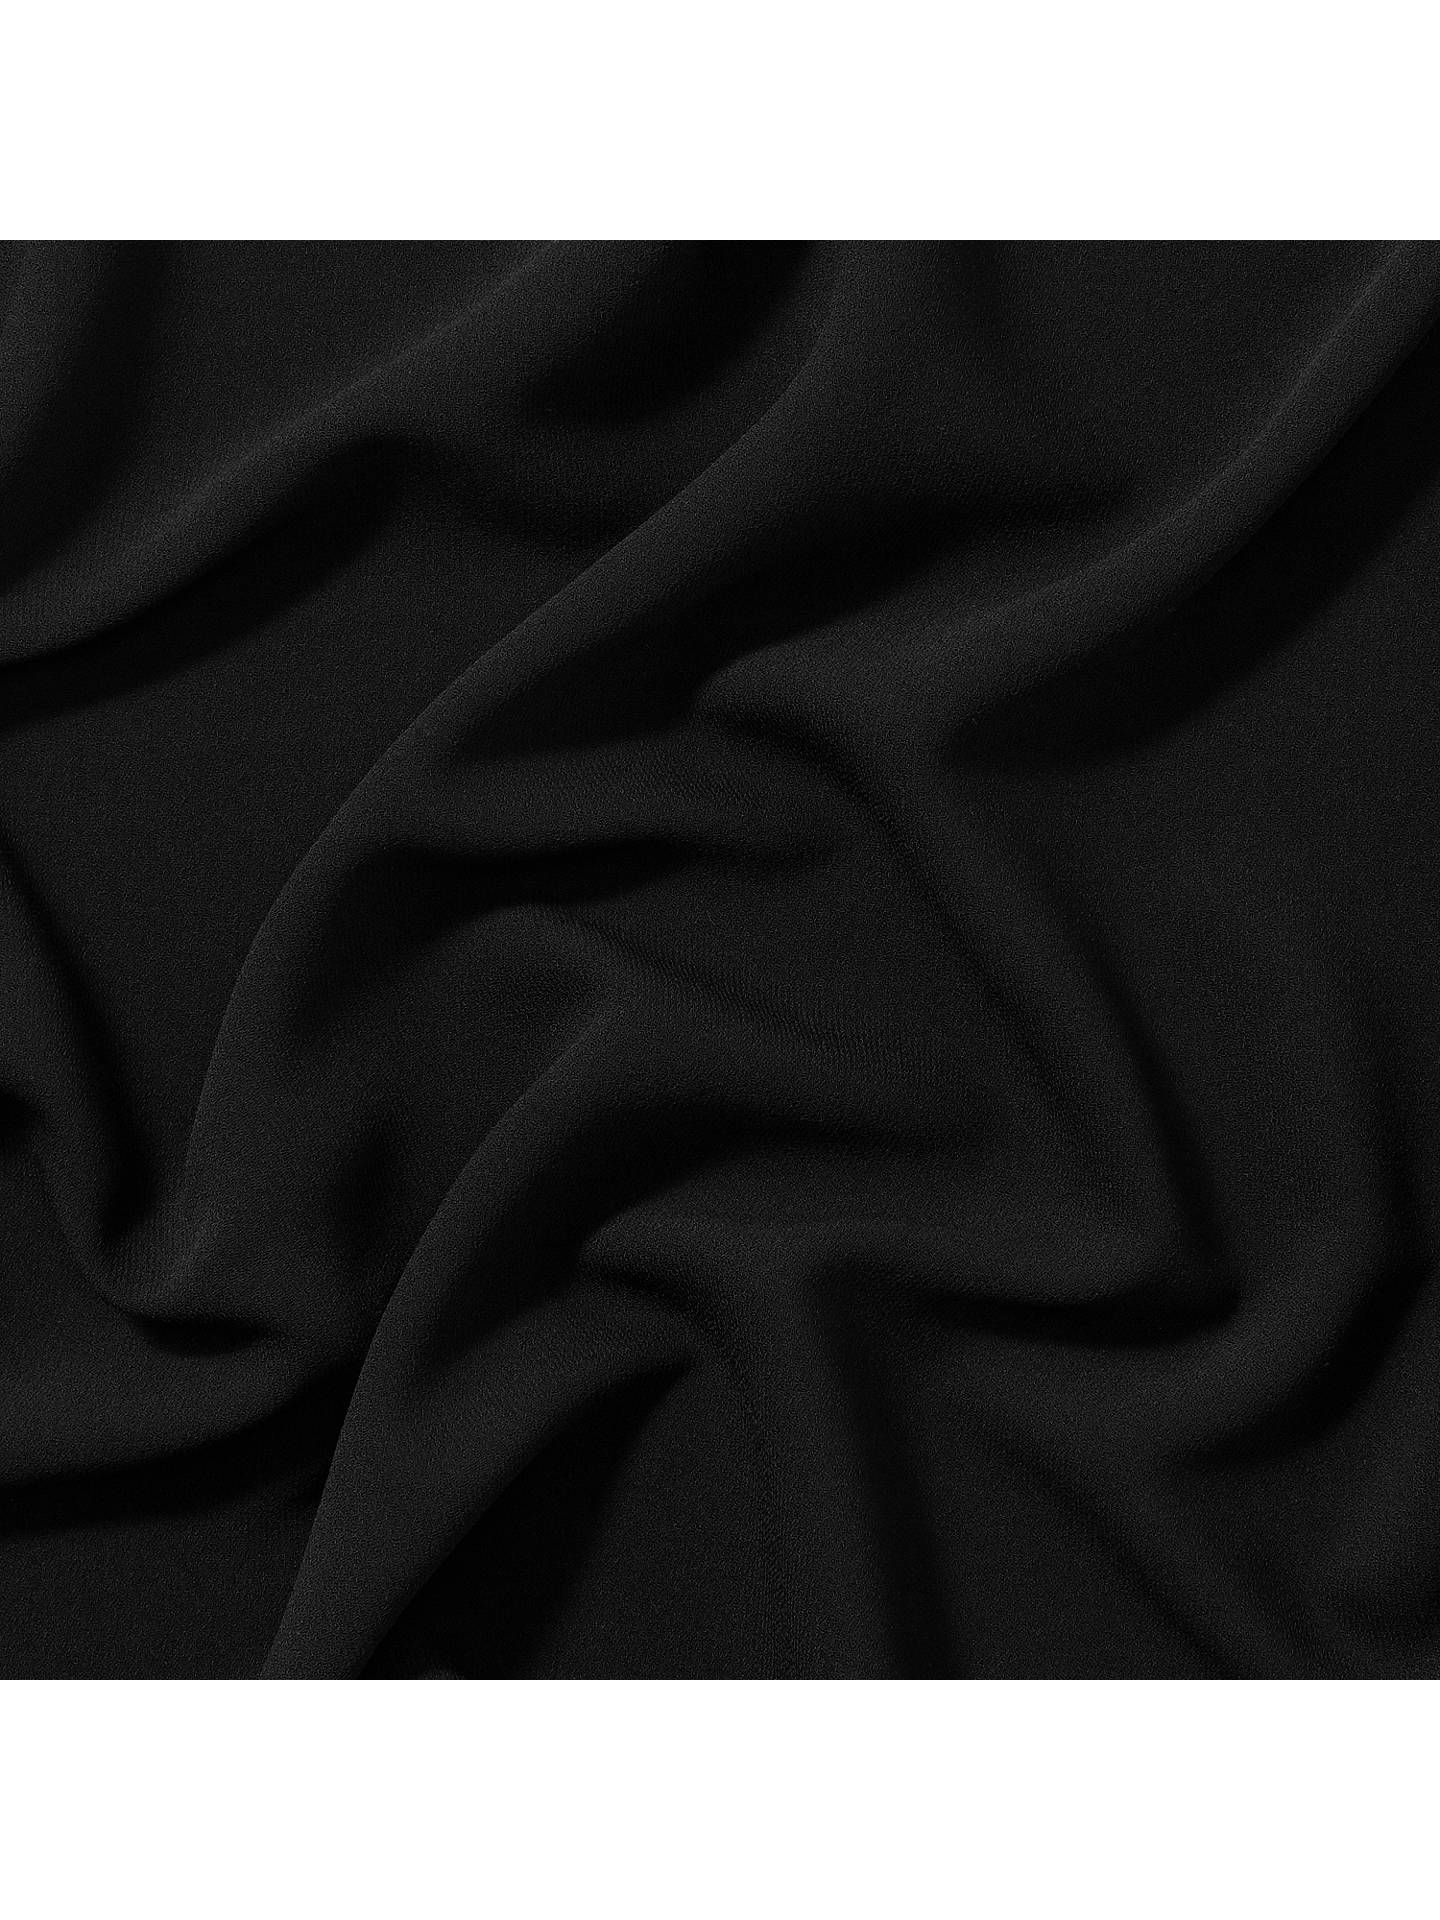 Buy Carrington Fabrics Prestige Crepe Fabric, Black Online at johnlewis.com